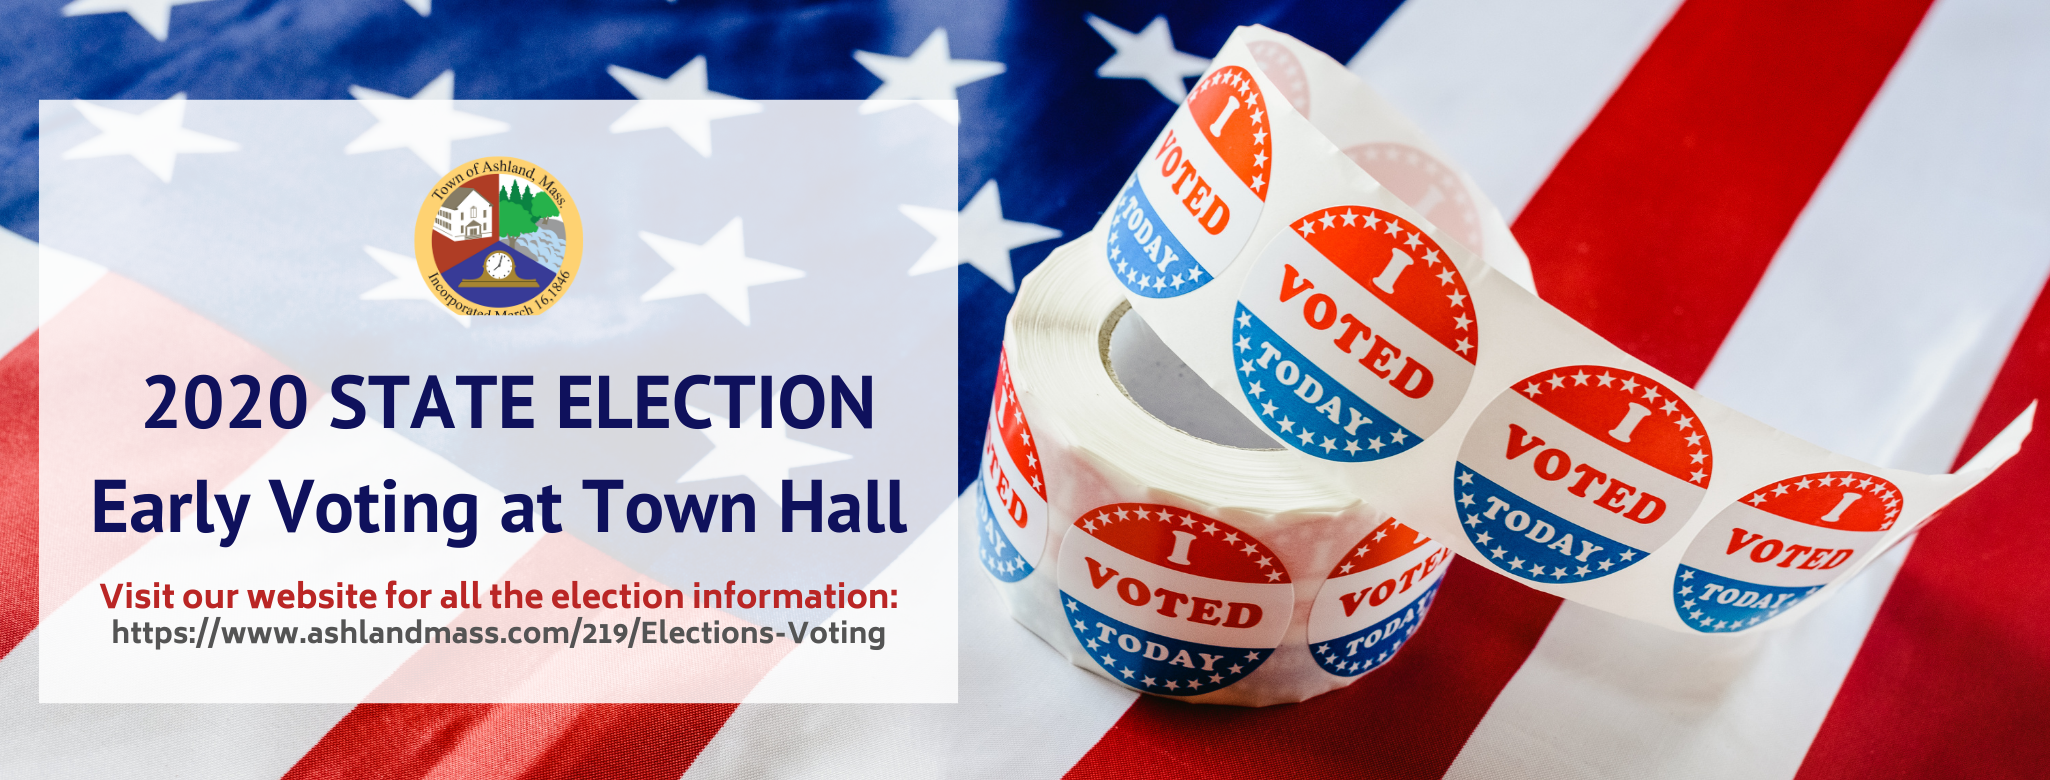 2020 STATE ELECTION Early Voting at Town Hall